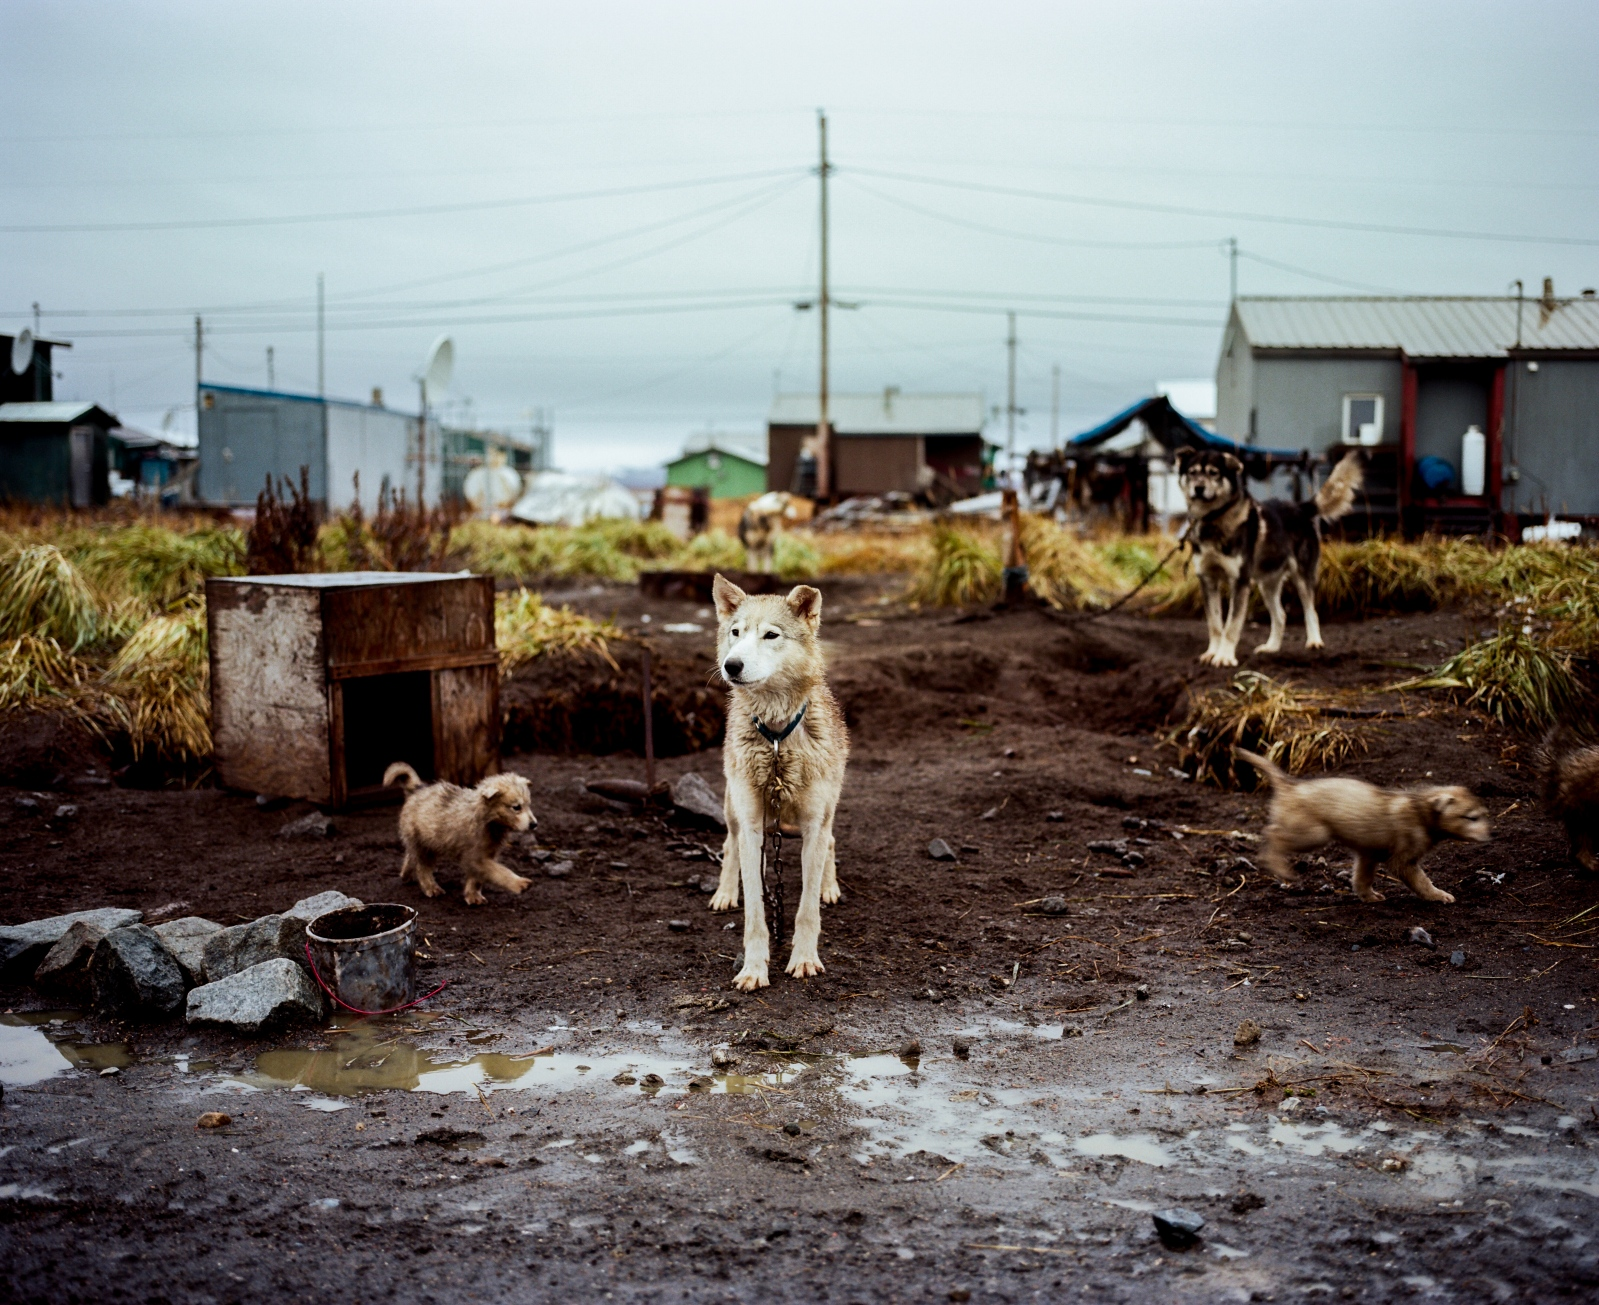 Lucy Adams' dog kennel in Kivalina, Alaska.